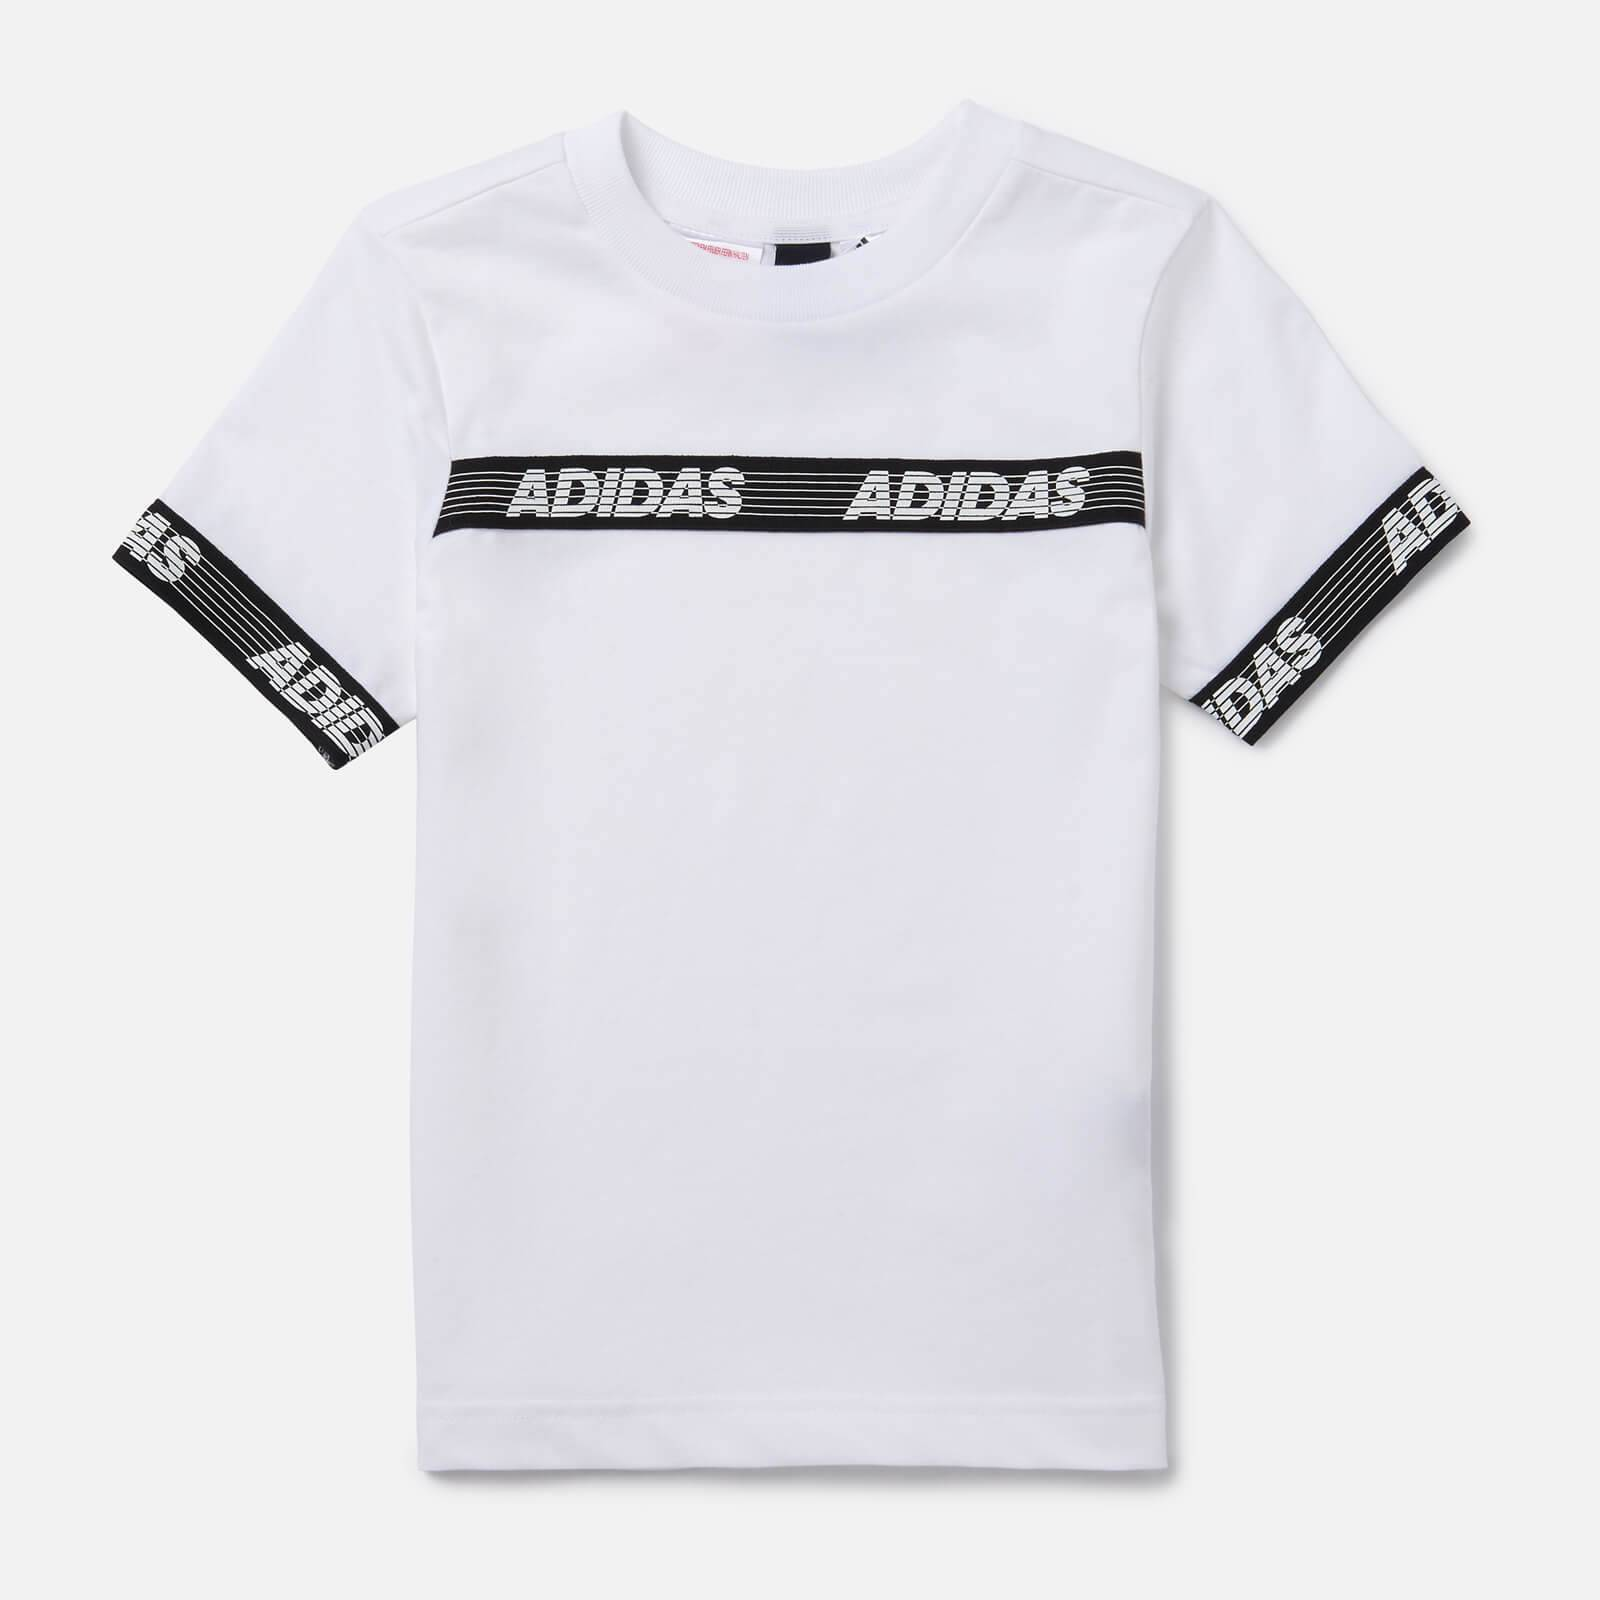 adidas Boys' Young Boys Sid Branded T-Shirt - White - 9-10 Years